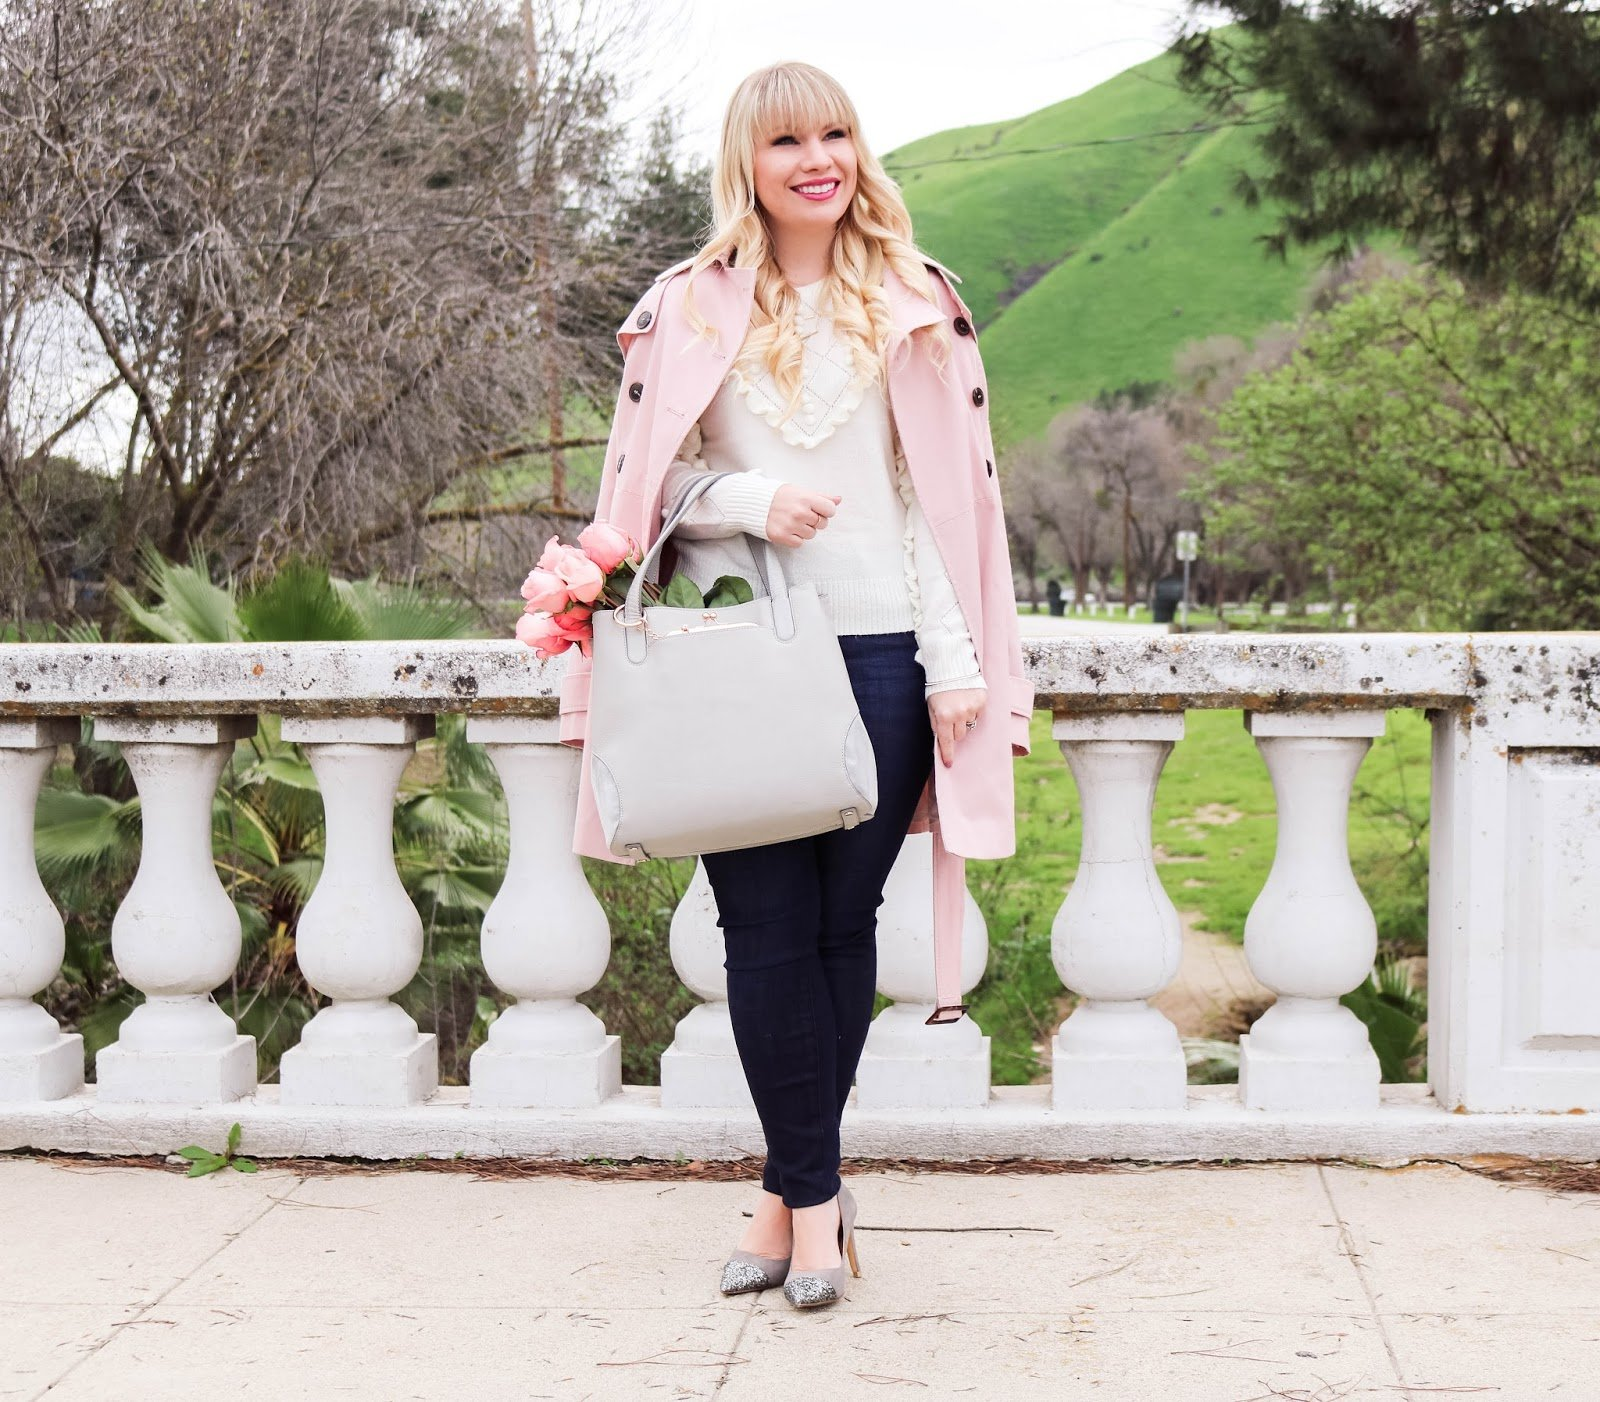 Elizabeth Hugen of Lizzie in Lace styles a pink trench coat for winter!